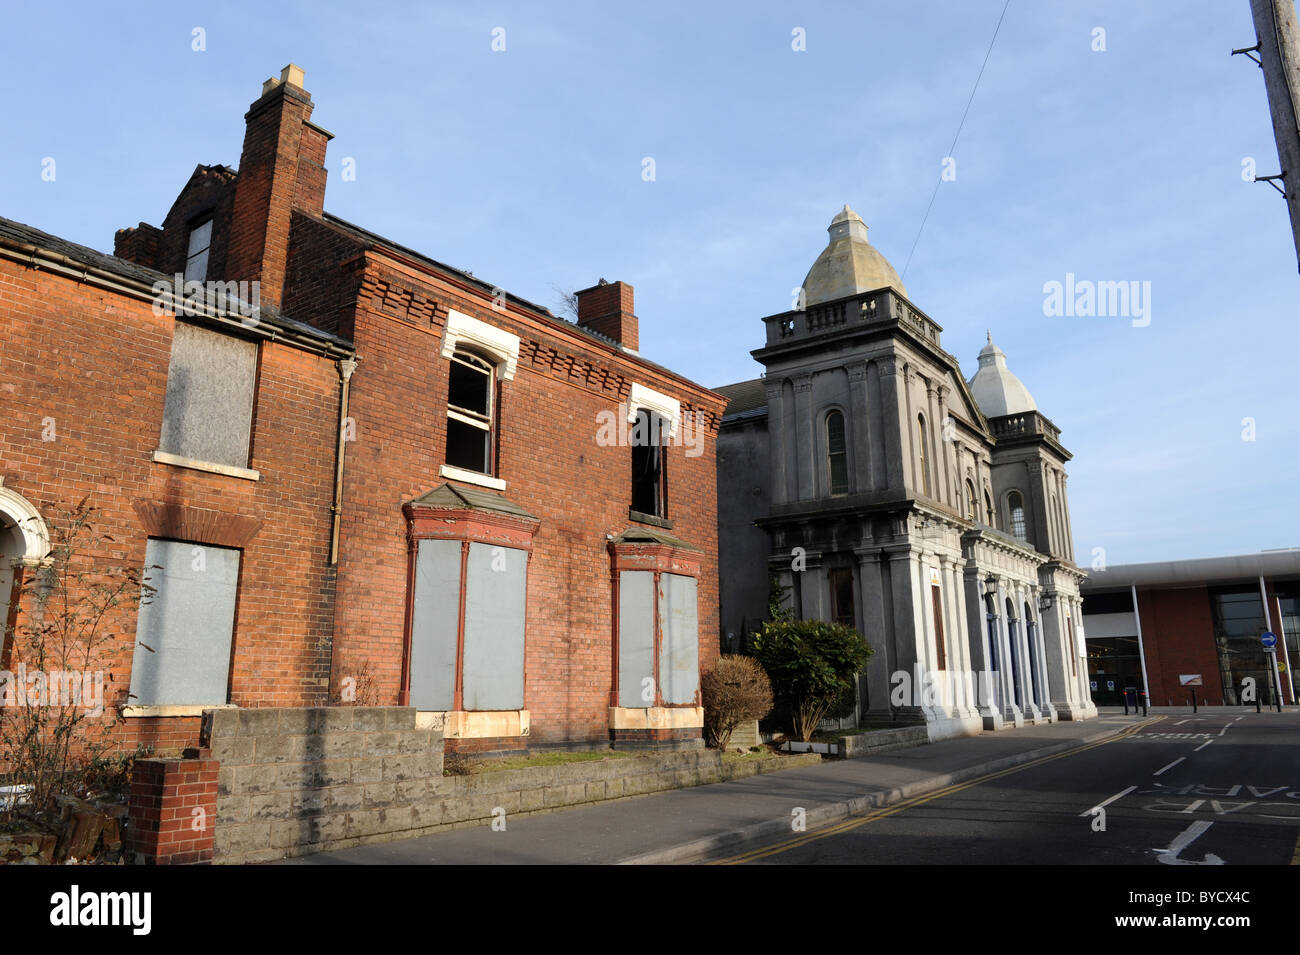 Willenhall in the West Midlands England Uk - Stock Image